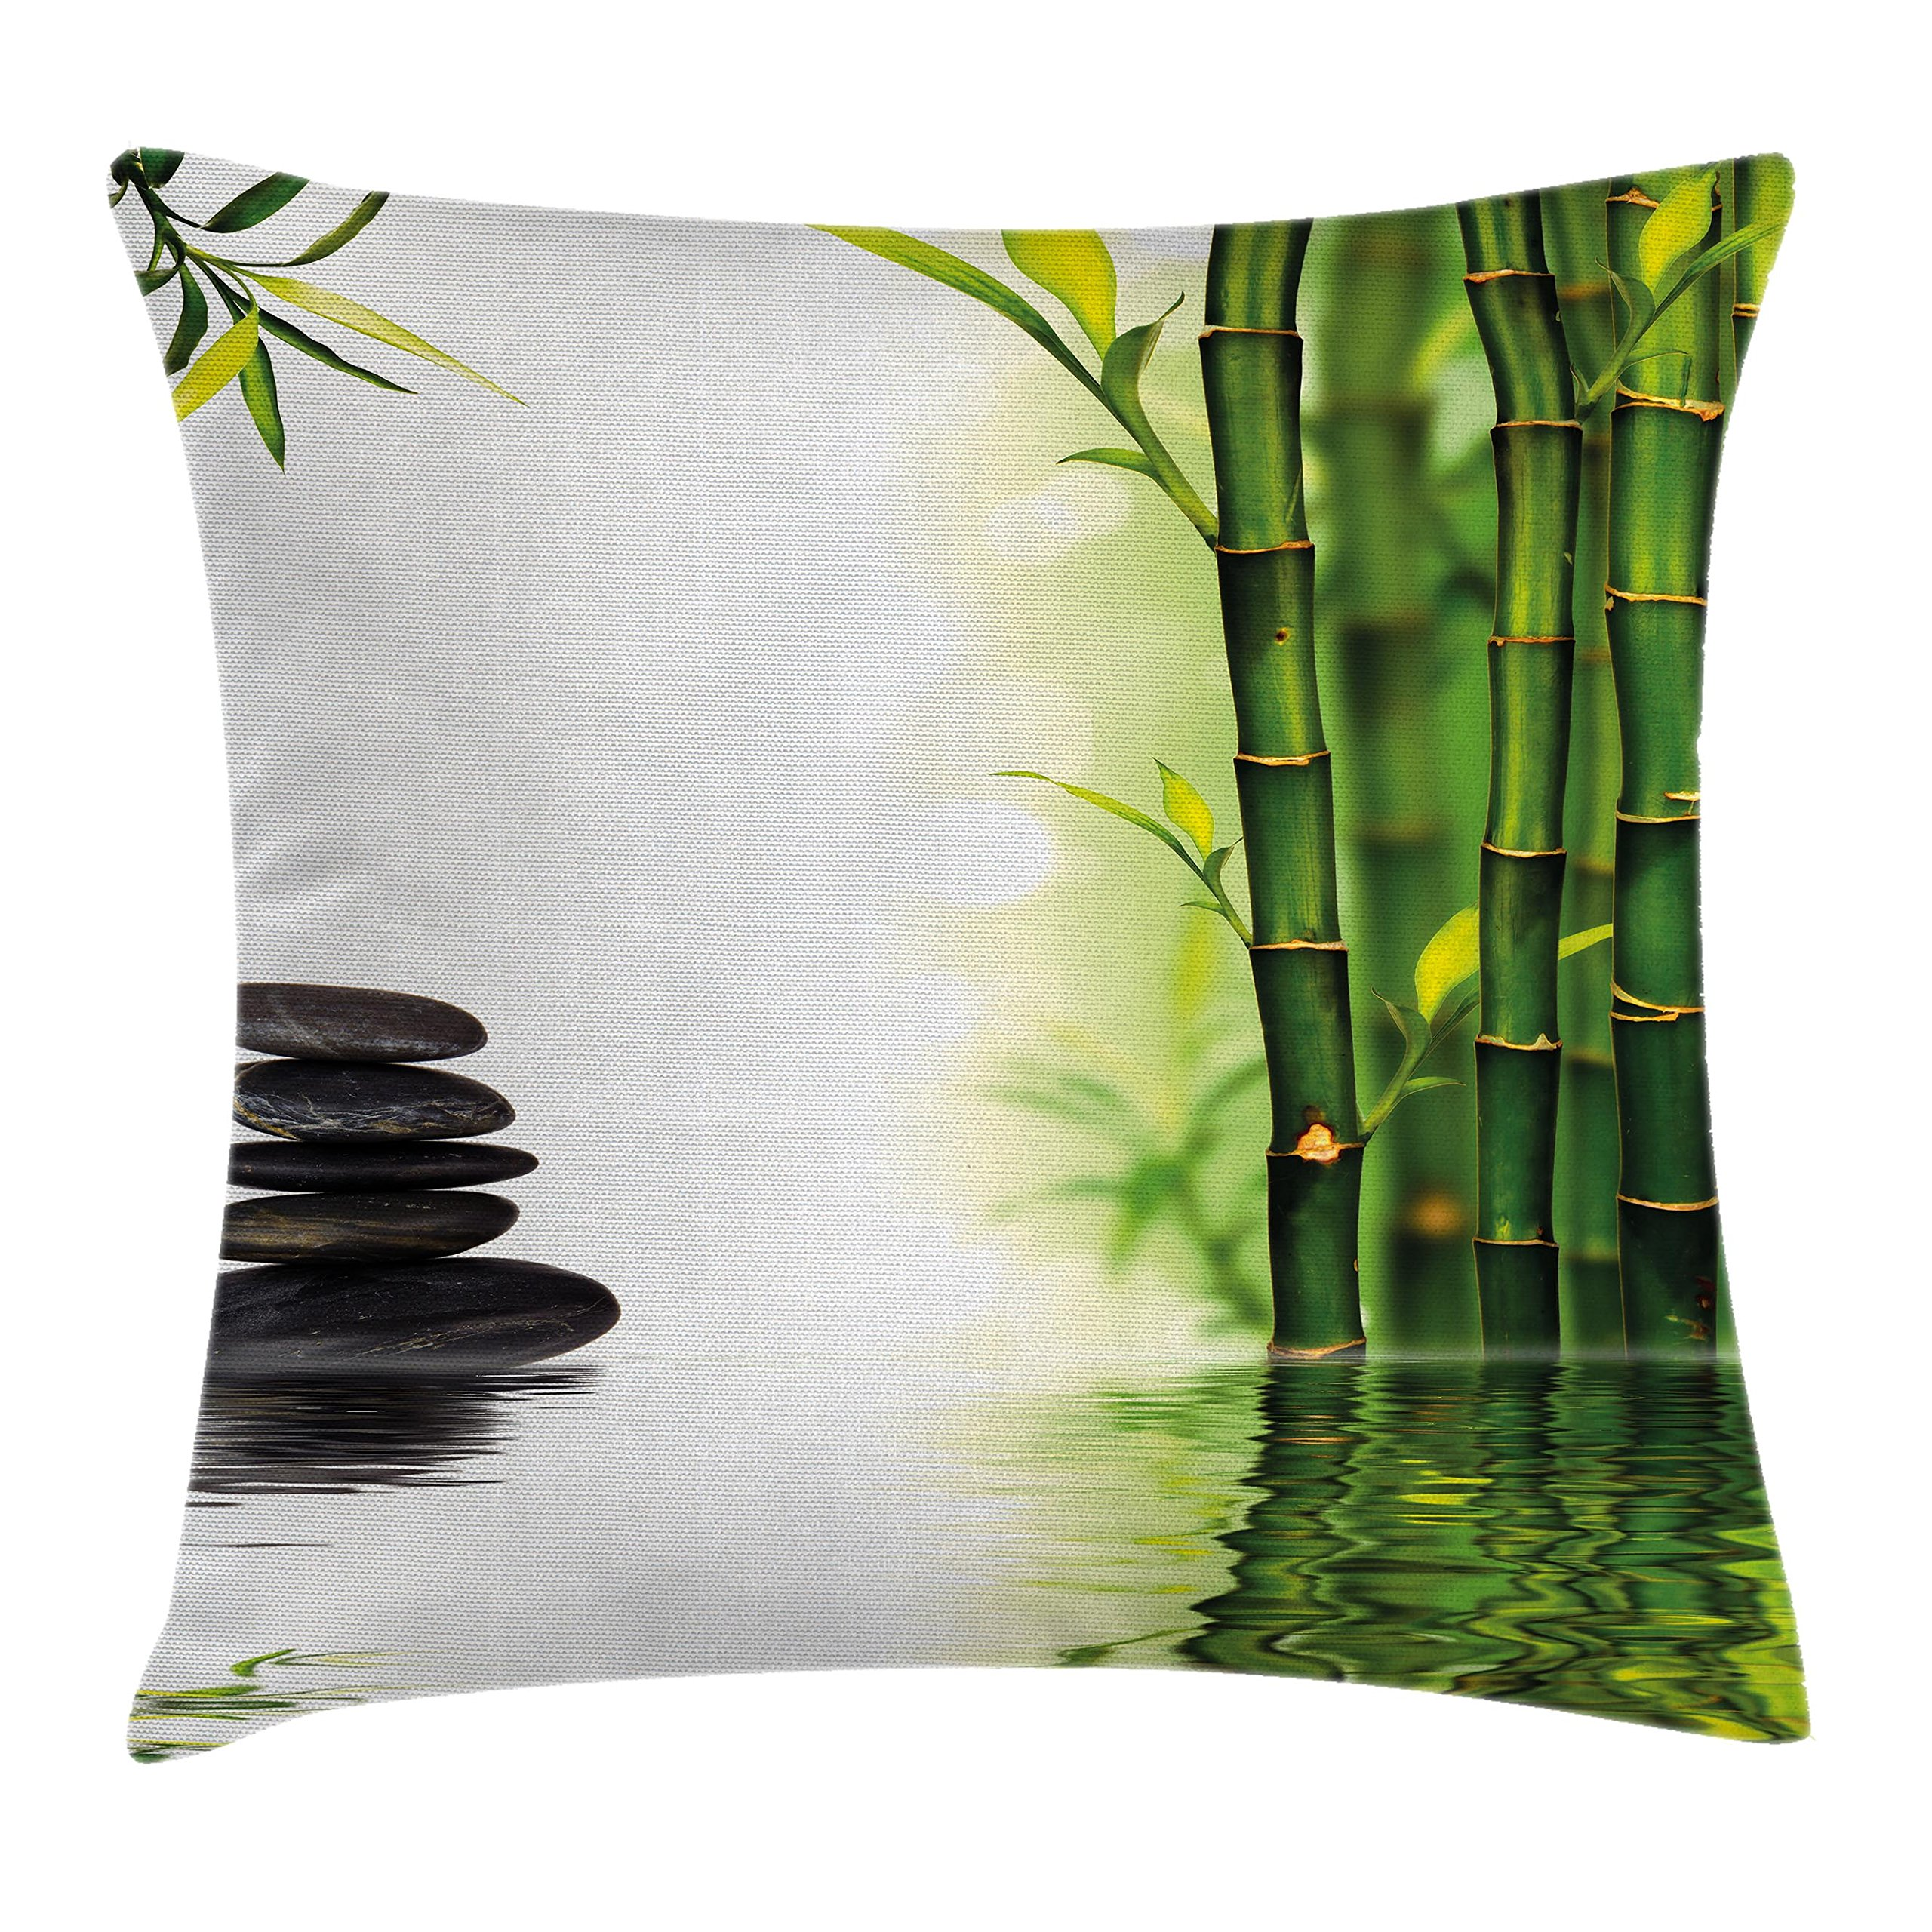 Ambesonne Spa Decor Throw Pillow Cushion Cover by, Bamboos Reflecting to the Water Near the Hot Black Massage Stones, Decorative Square Accent Pillow Case, 18 X 18 Inches, Black Green and White